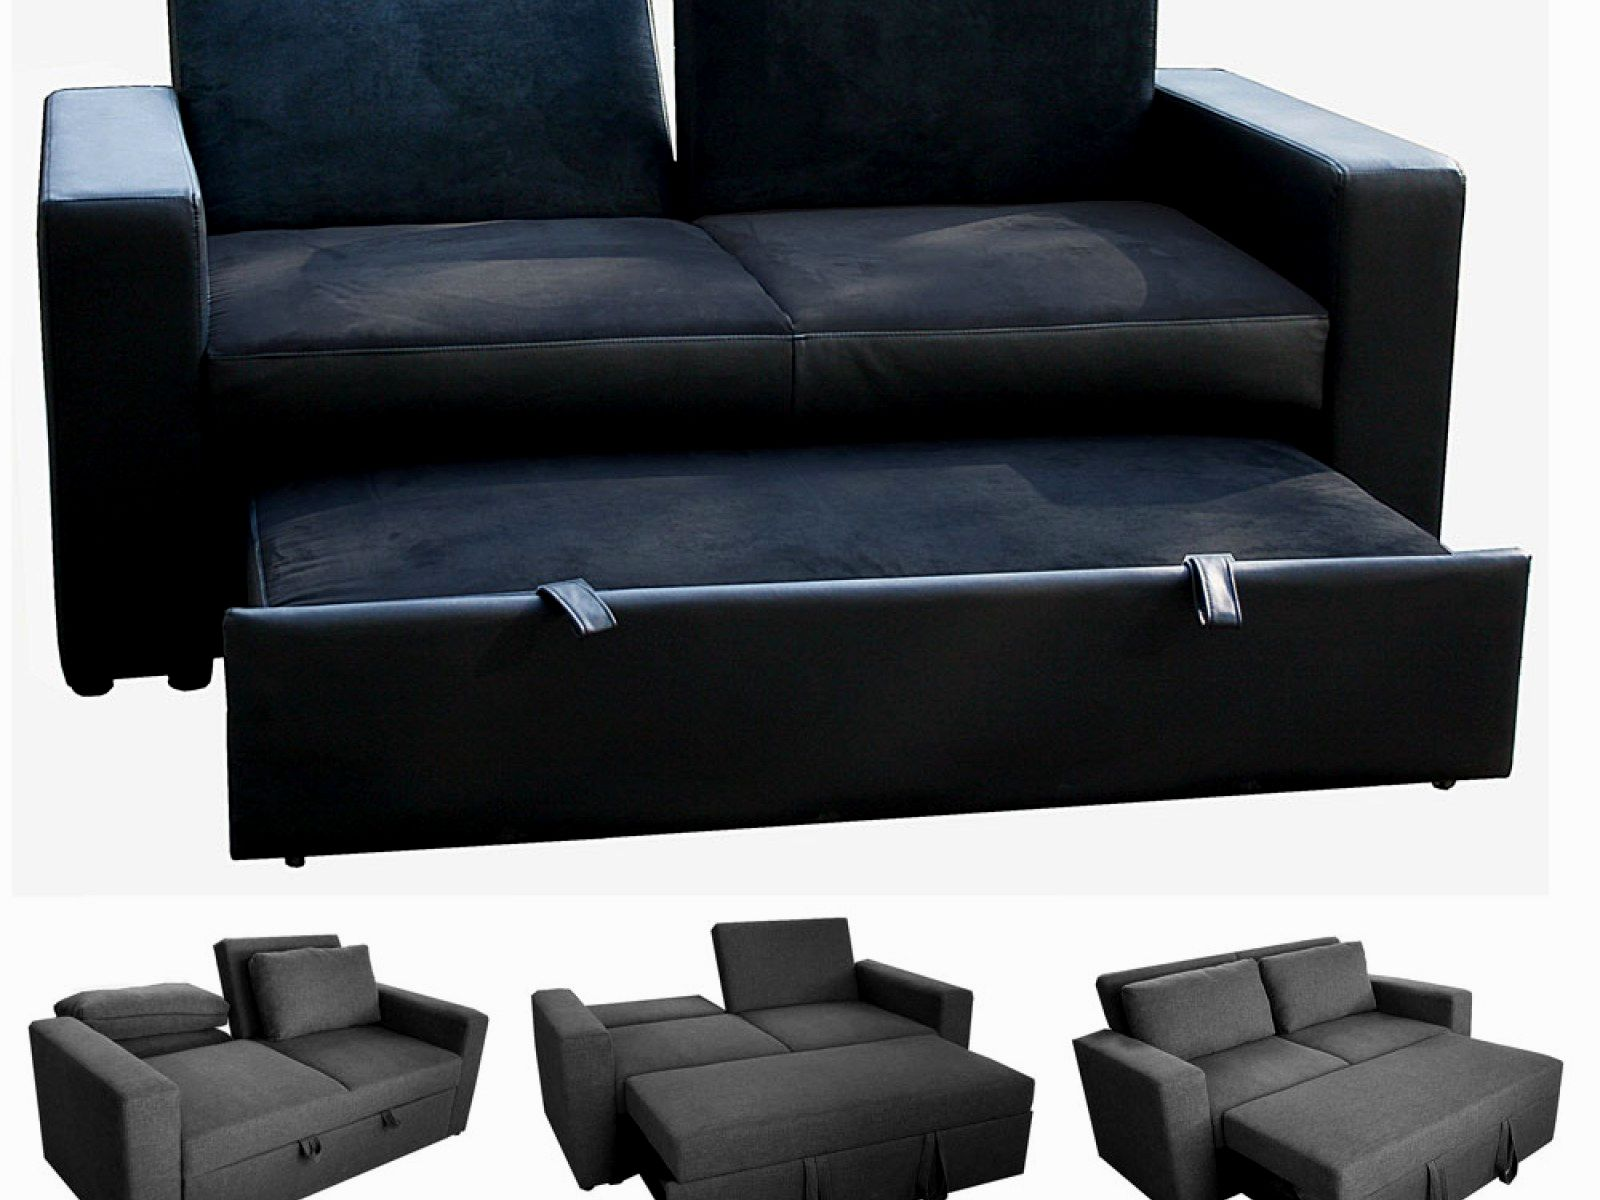 awesome quality sectional sofas wallpaper-Contemporary Quality Sectional sofas Decoration